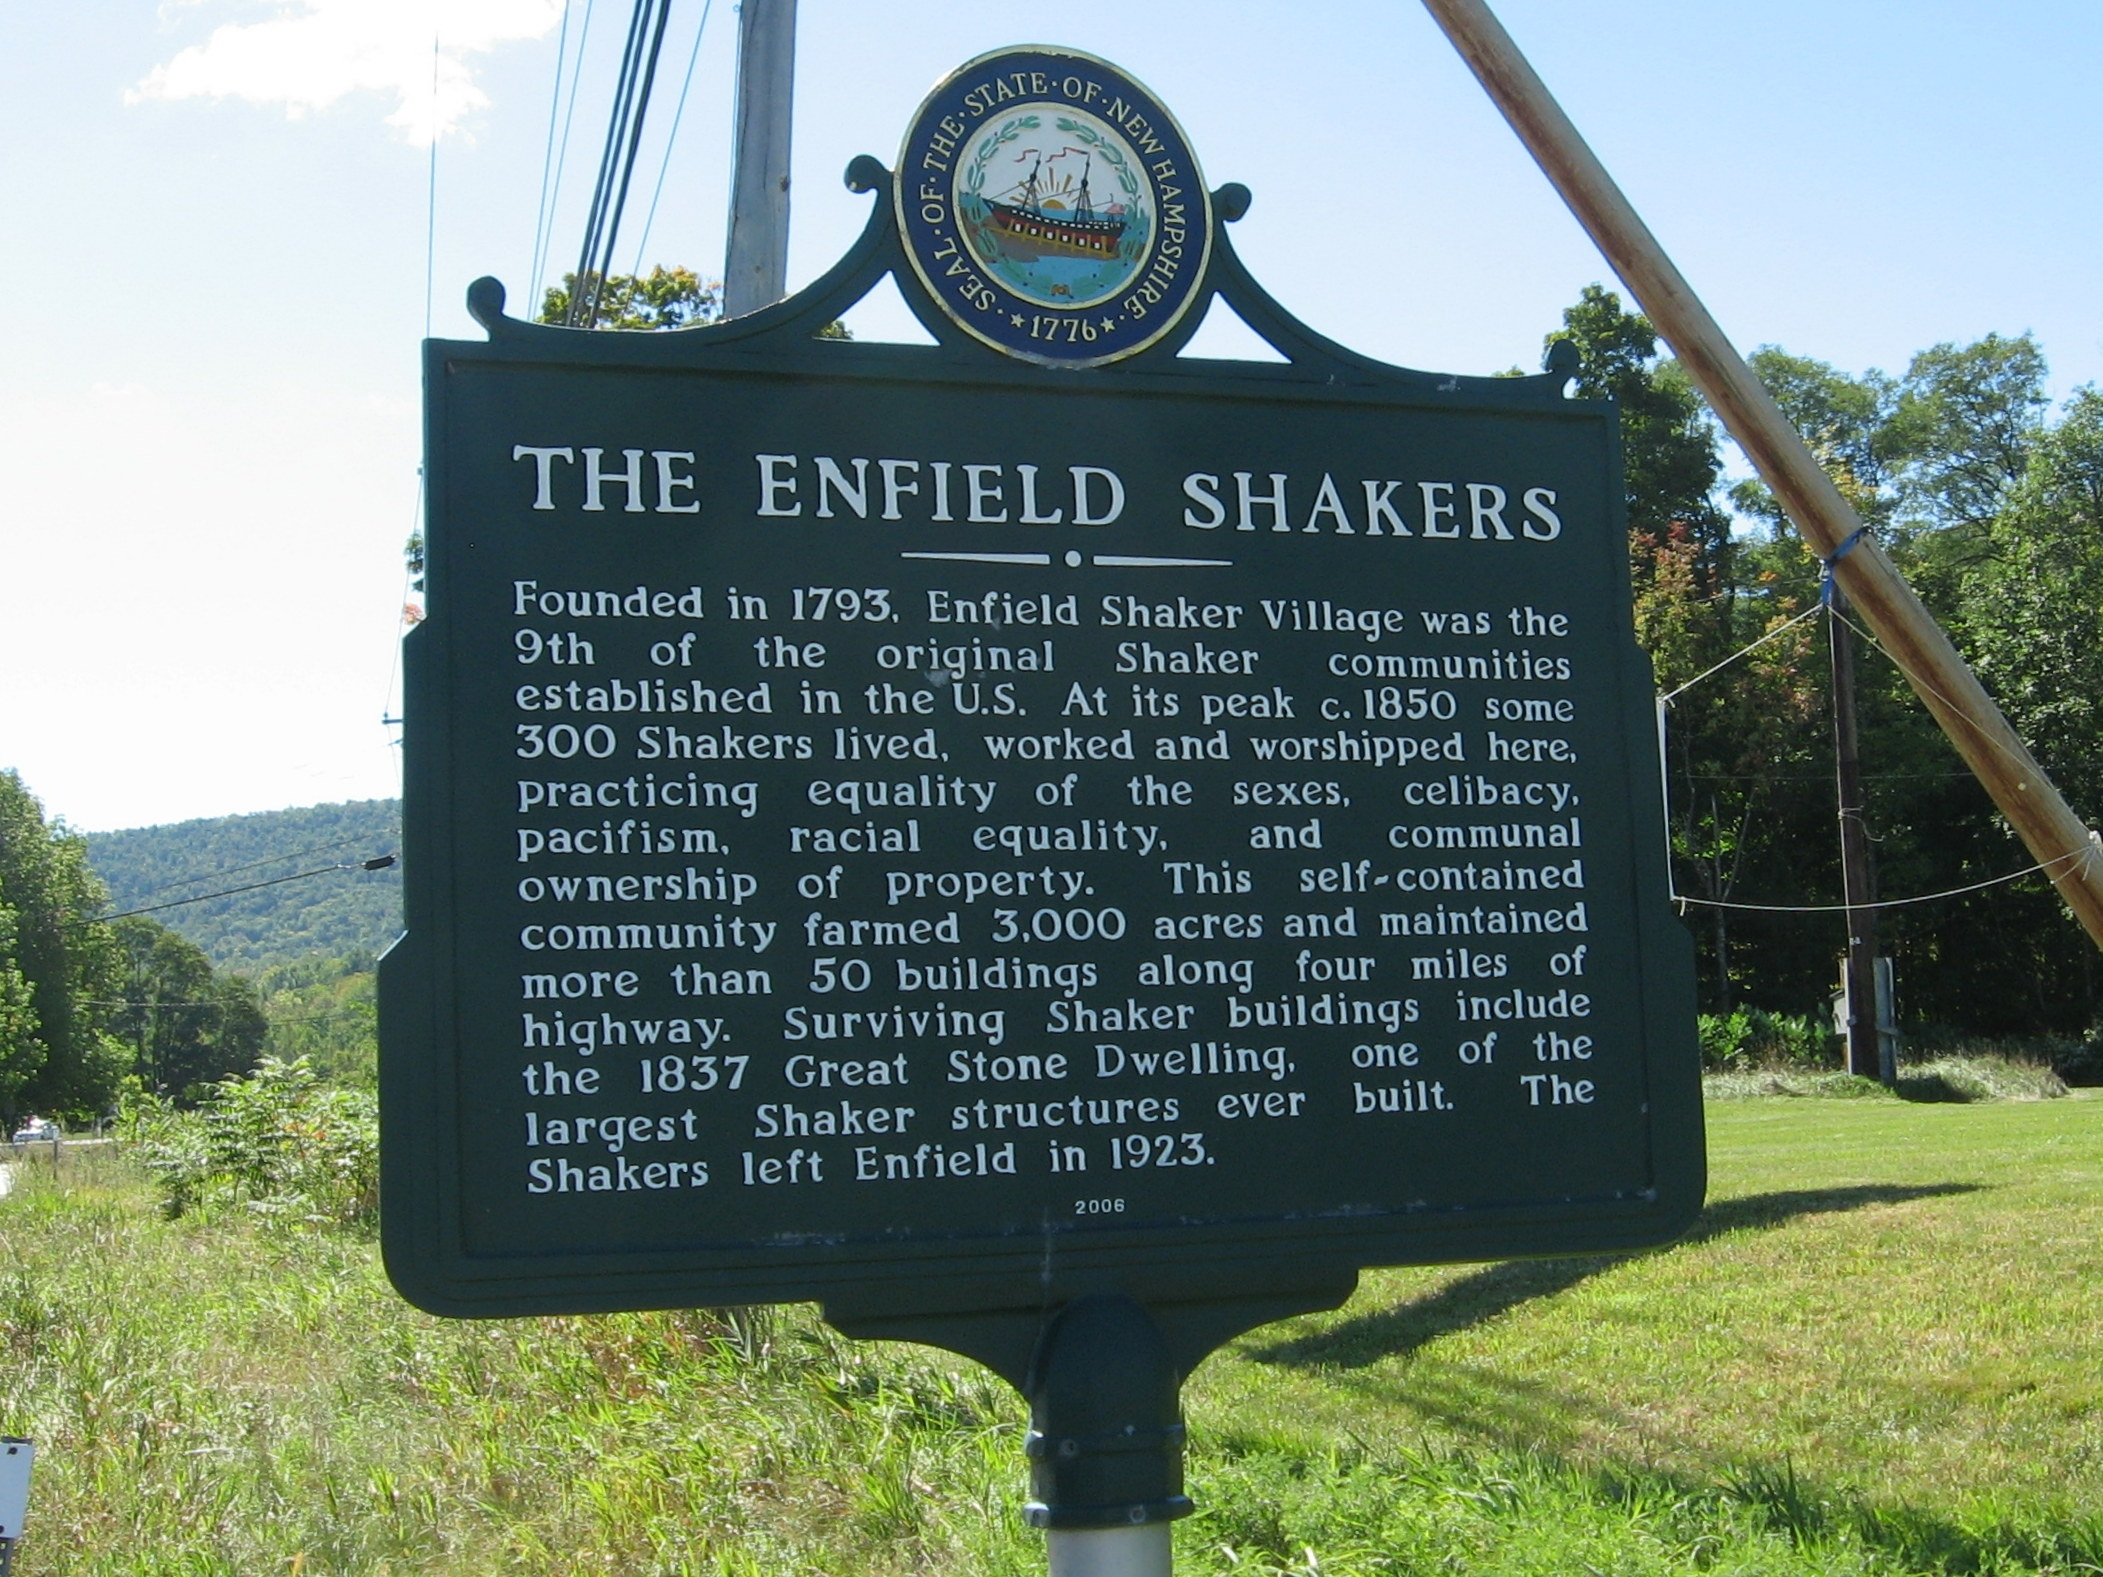 The Enfield Shakers Marker